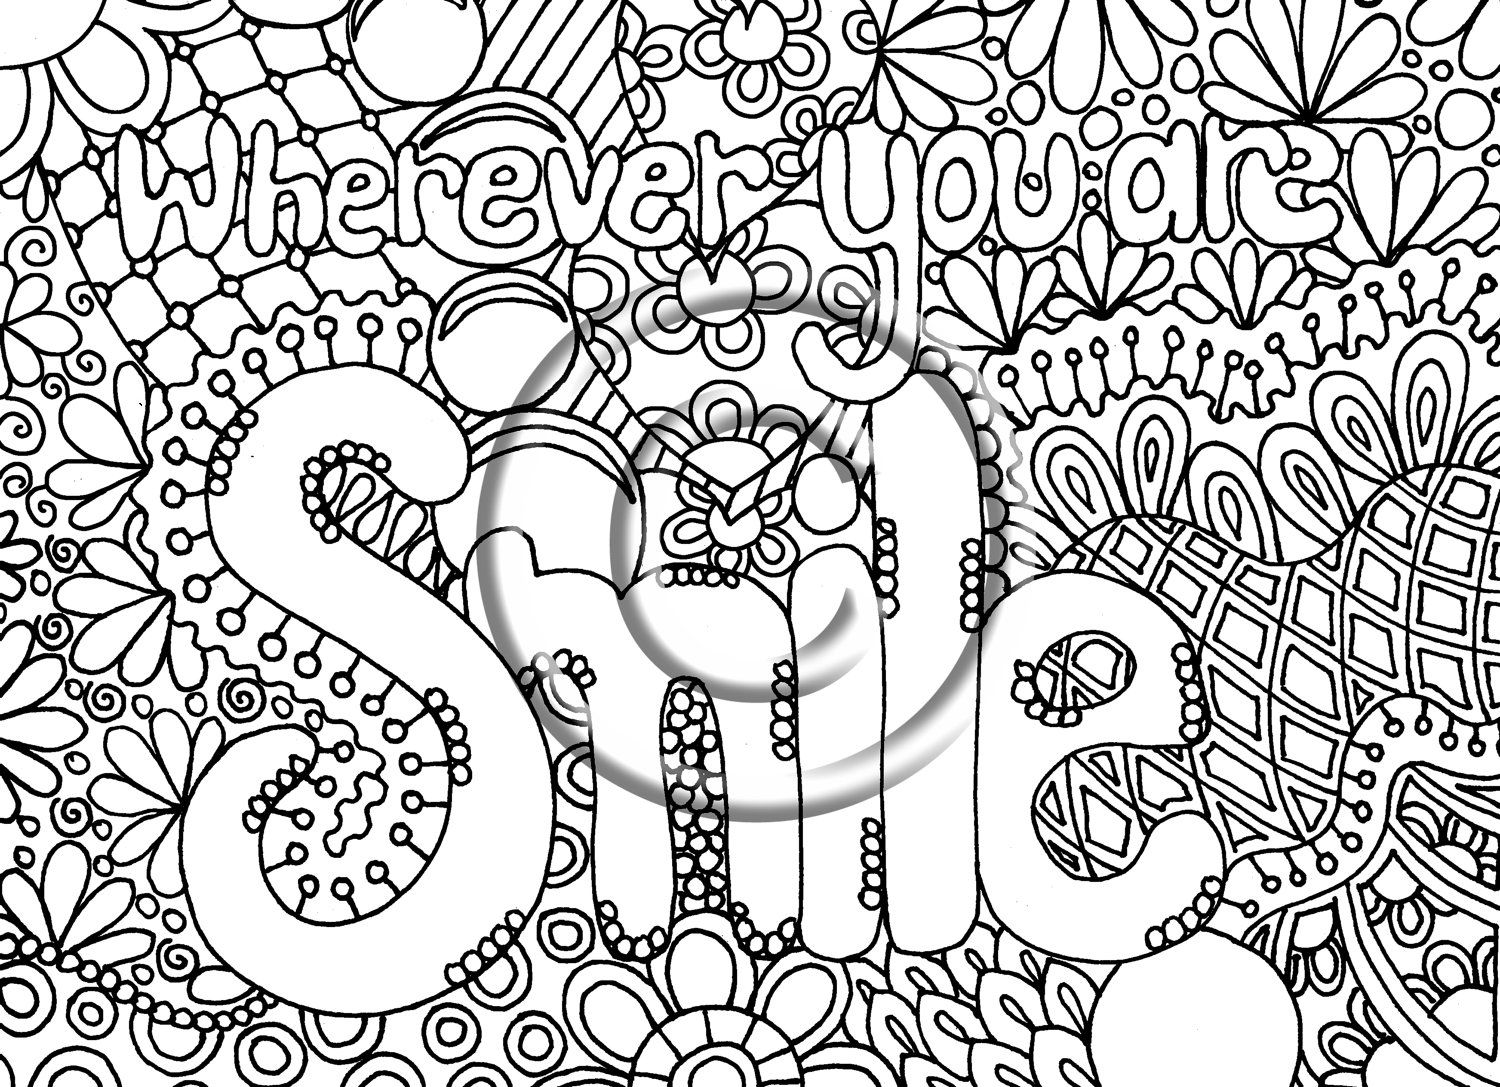 digital download coloring page hand drawn zentangle inspired